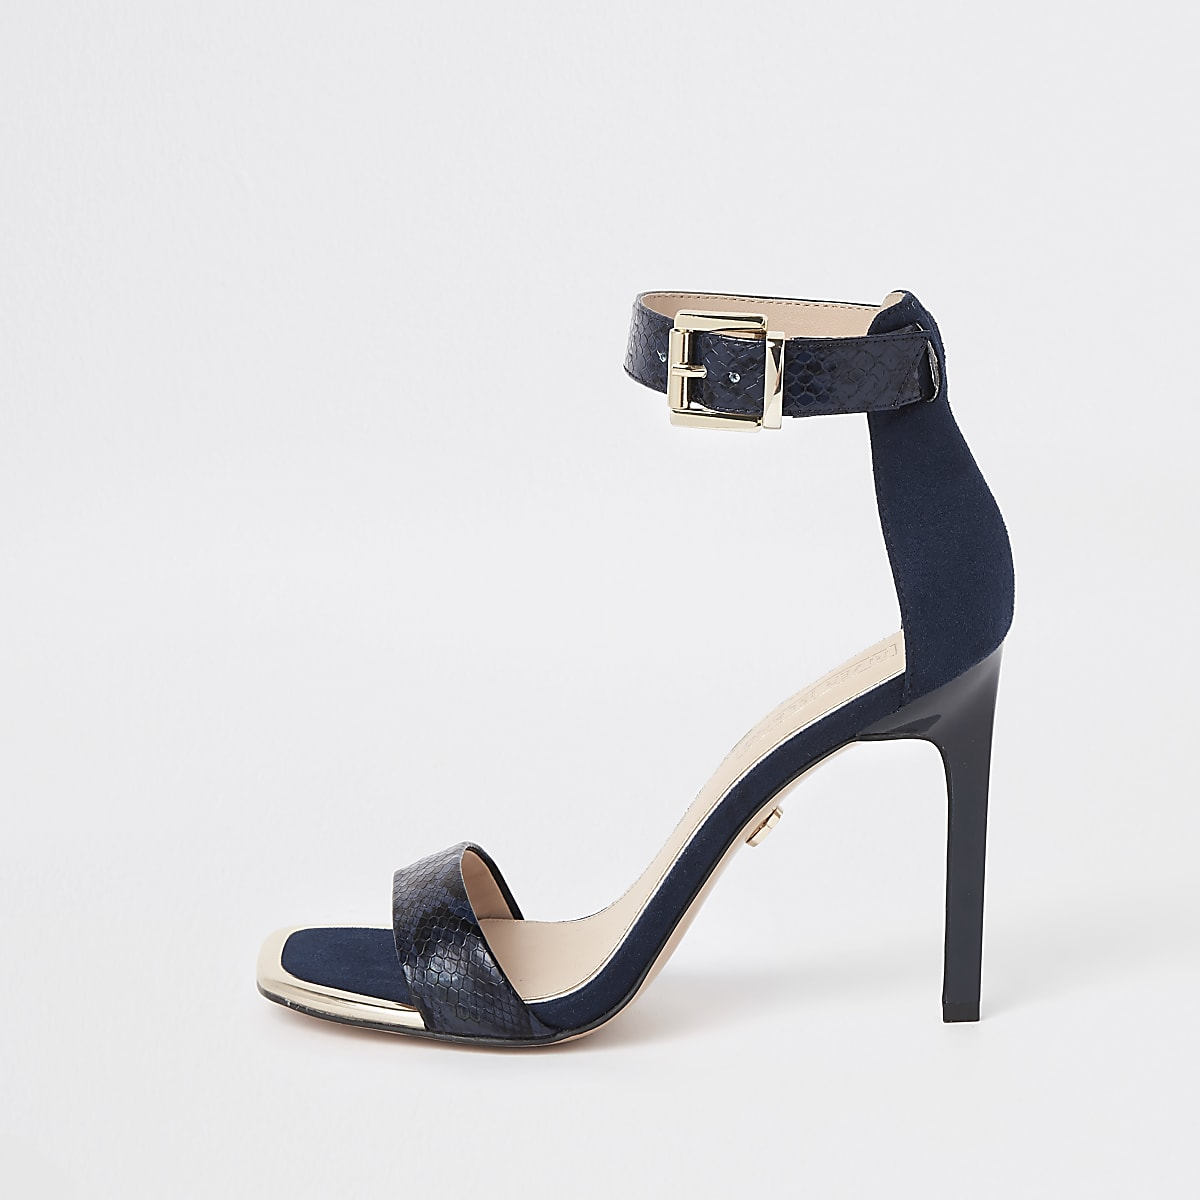 Navy croc embossed barely there sandals